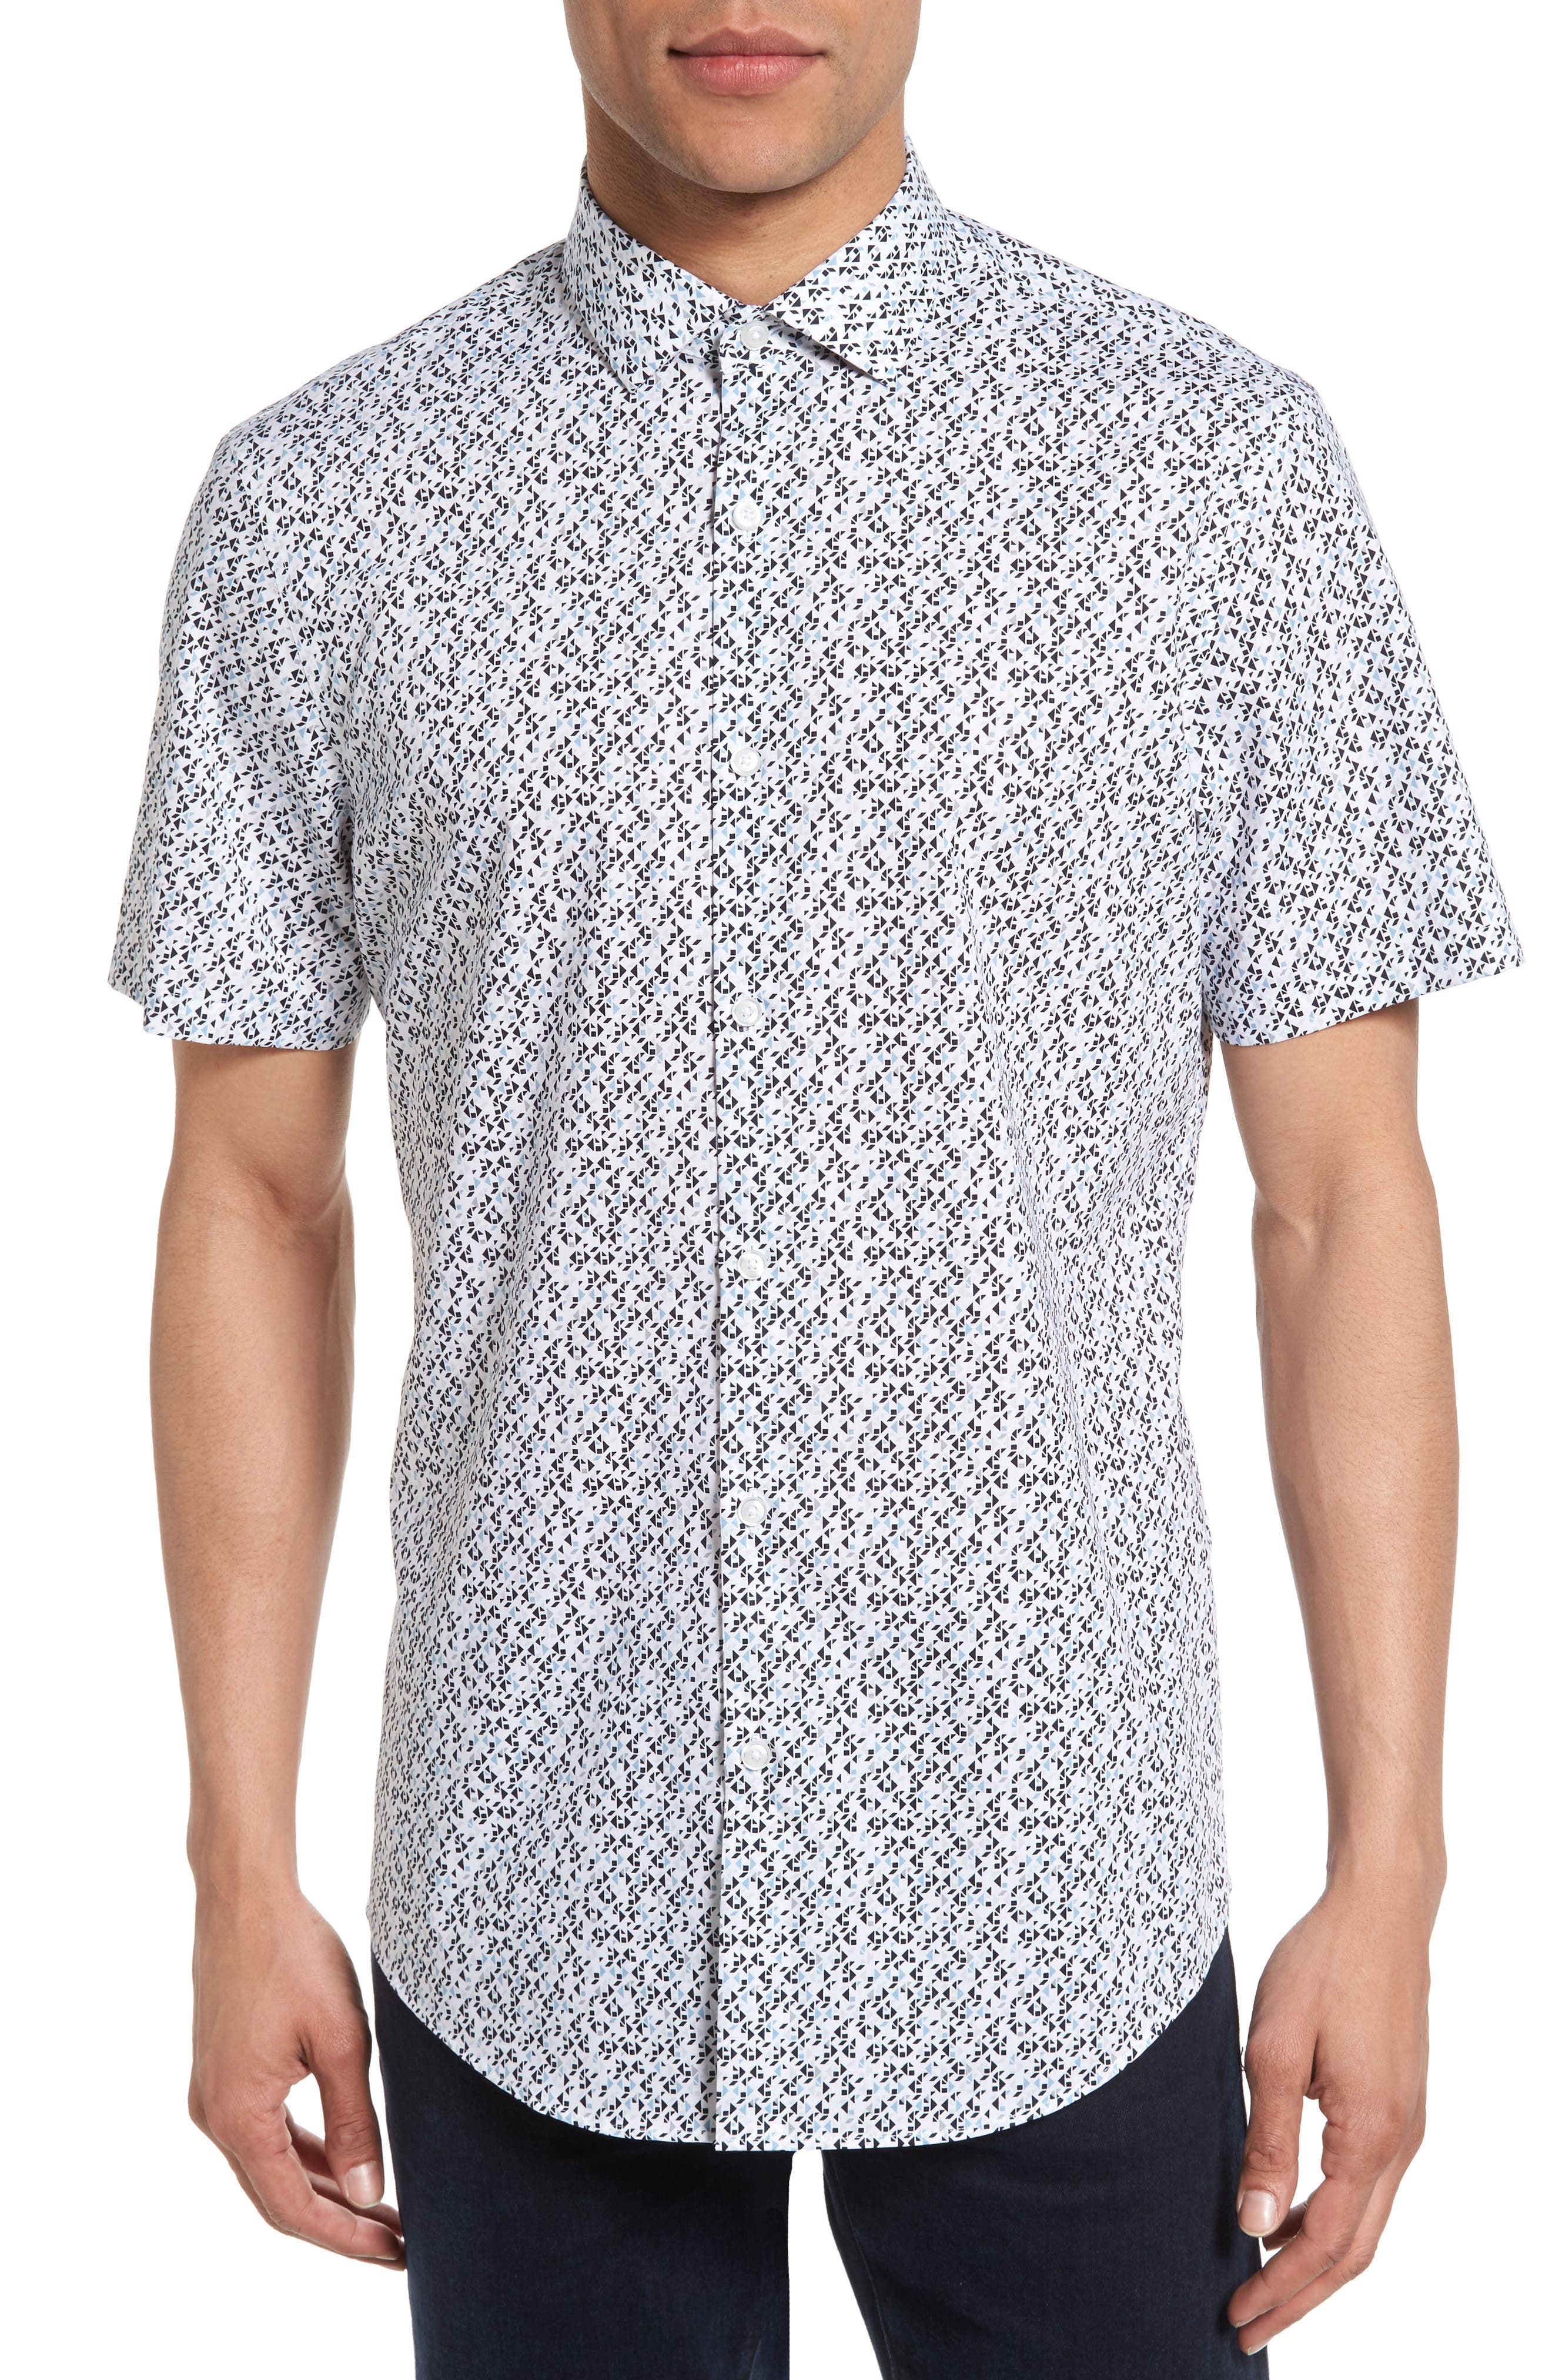 No-Iron Geo Print Woven Shirt,                             Main thumbnail 1, color,                             Grey Lunar White Triangle Geo